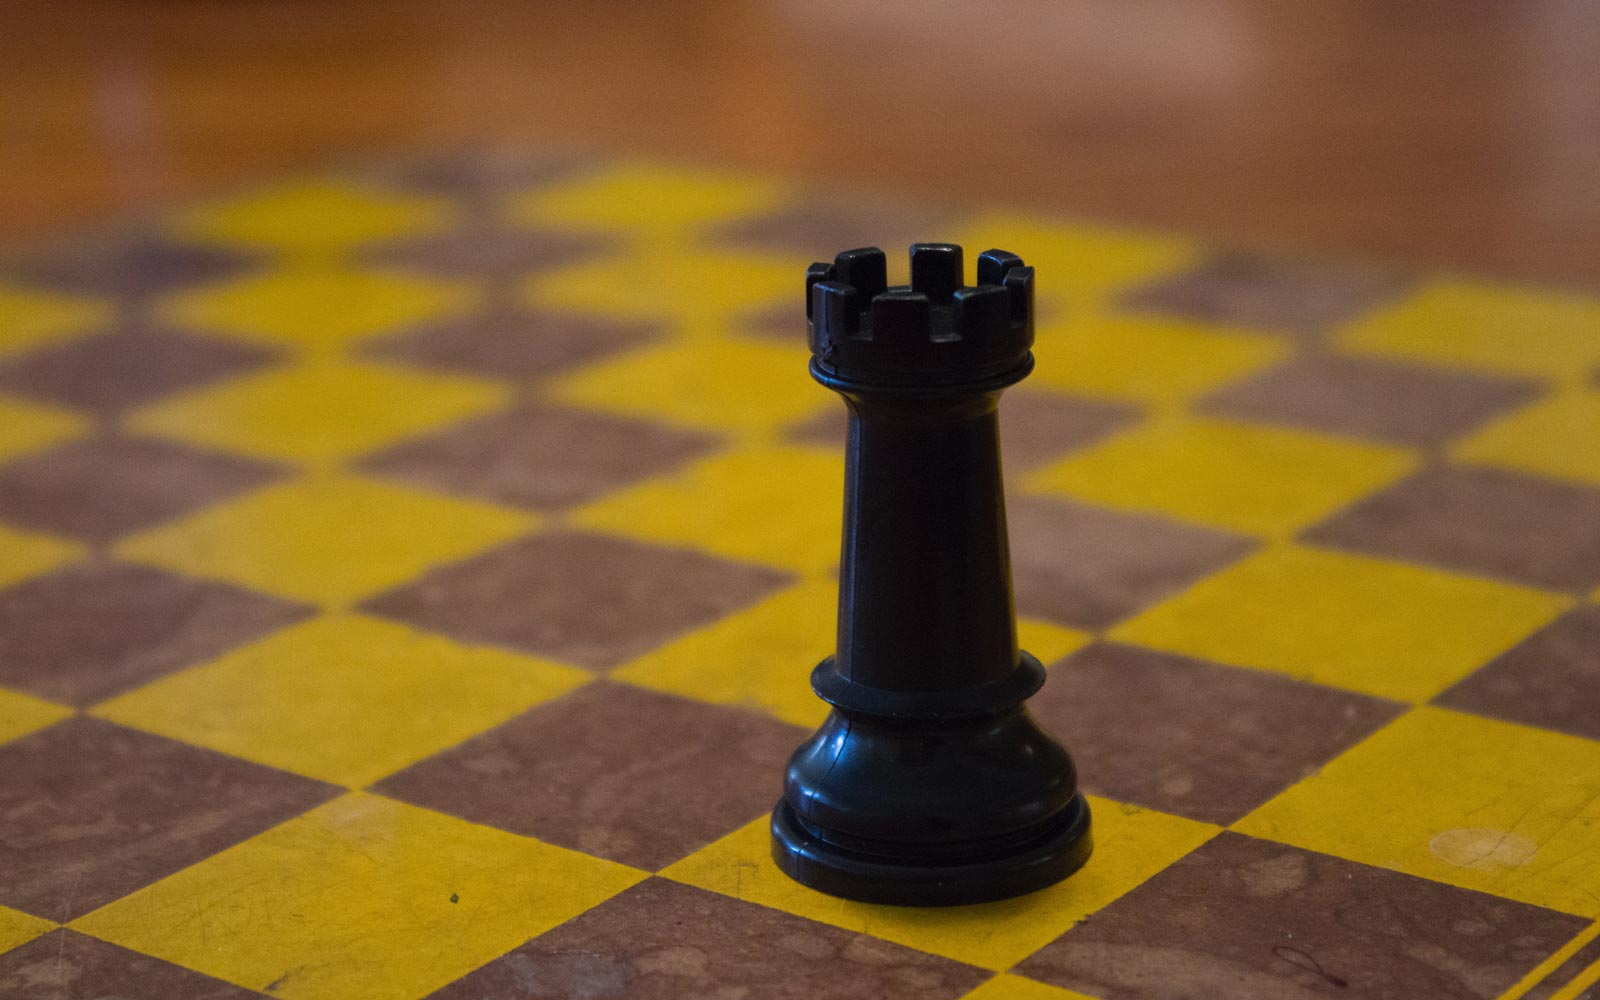 Chess Board with one figure